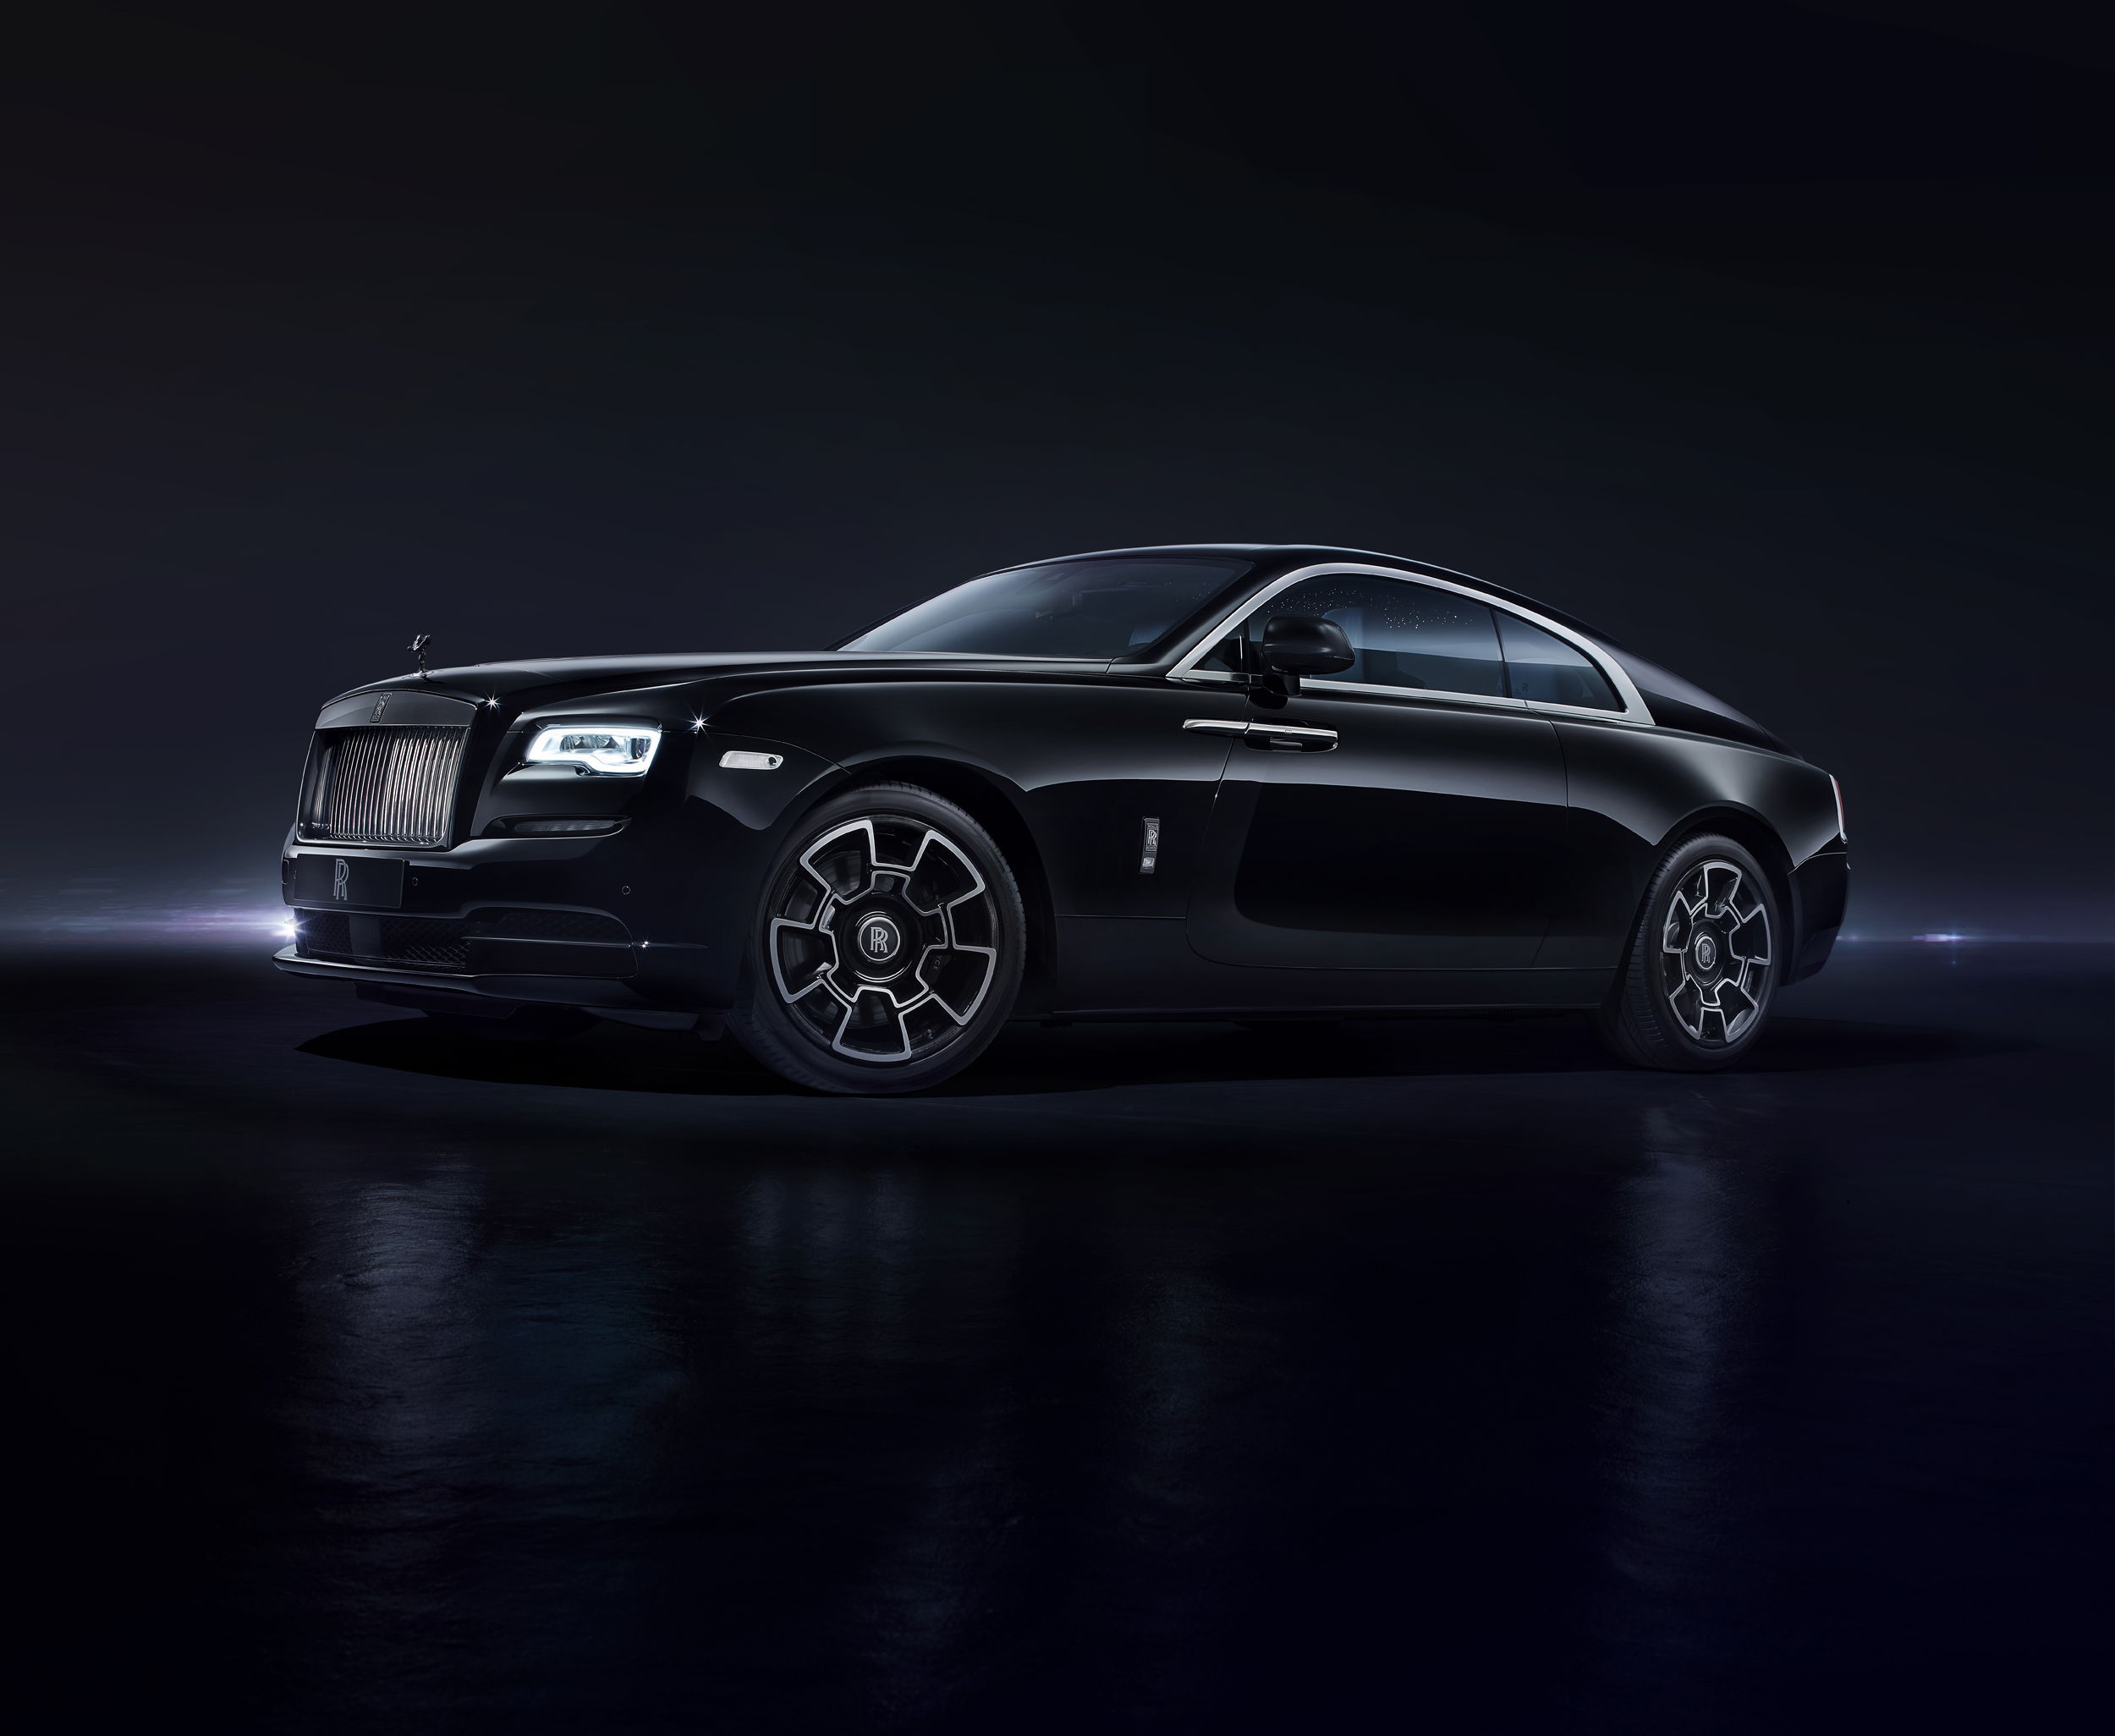 The Rolls Royce Black Badge Turns Murdering Out Into An Elegant Art Form The Verge